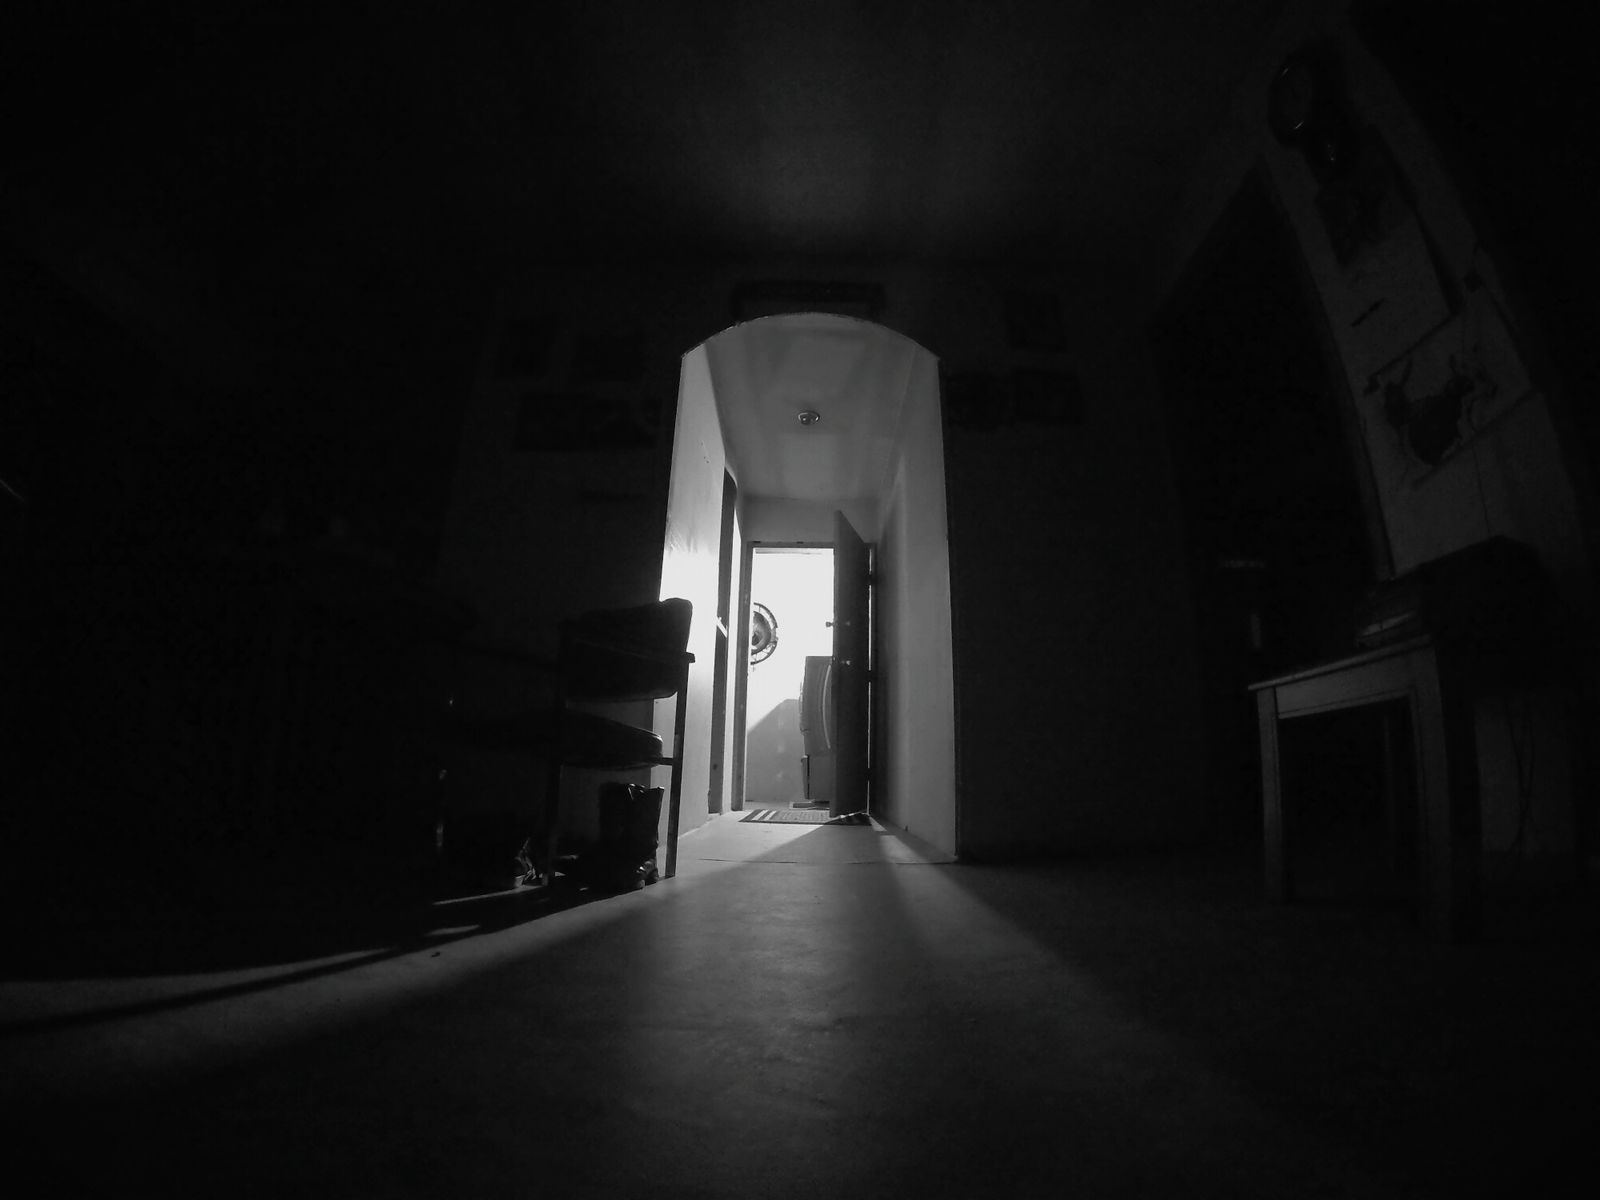 Indoors  The Way Forward Doorway Arch No People Low Angle View Fish Eye Night EyeEm Best Shots Blackandwhite Late Night Door Way Chillin Out At Home Darkness And Light Dark Photography